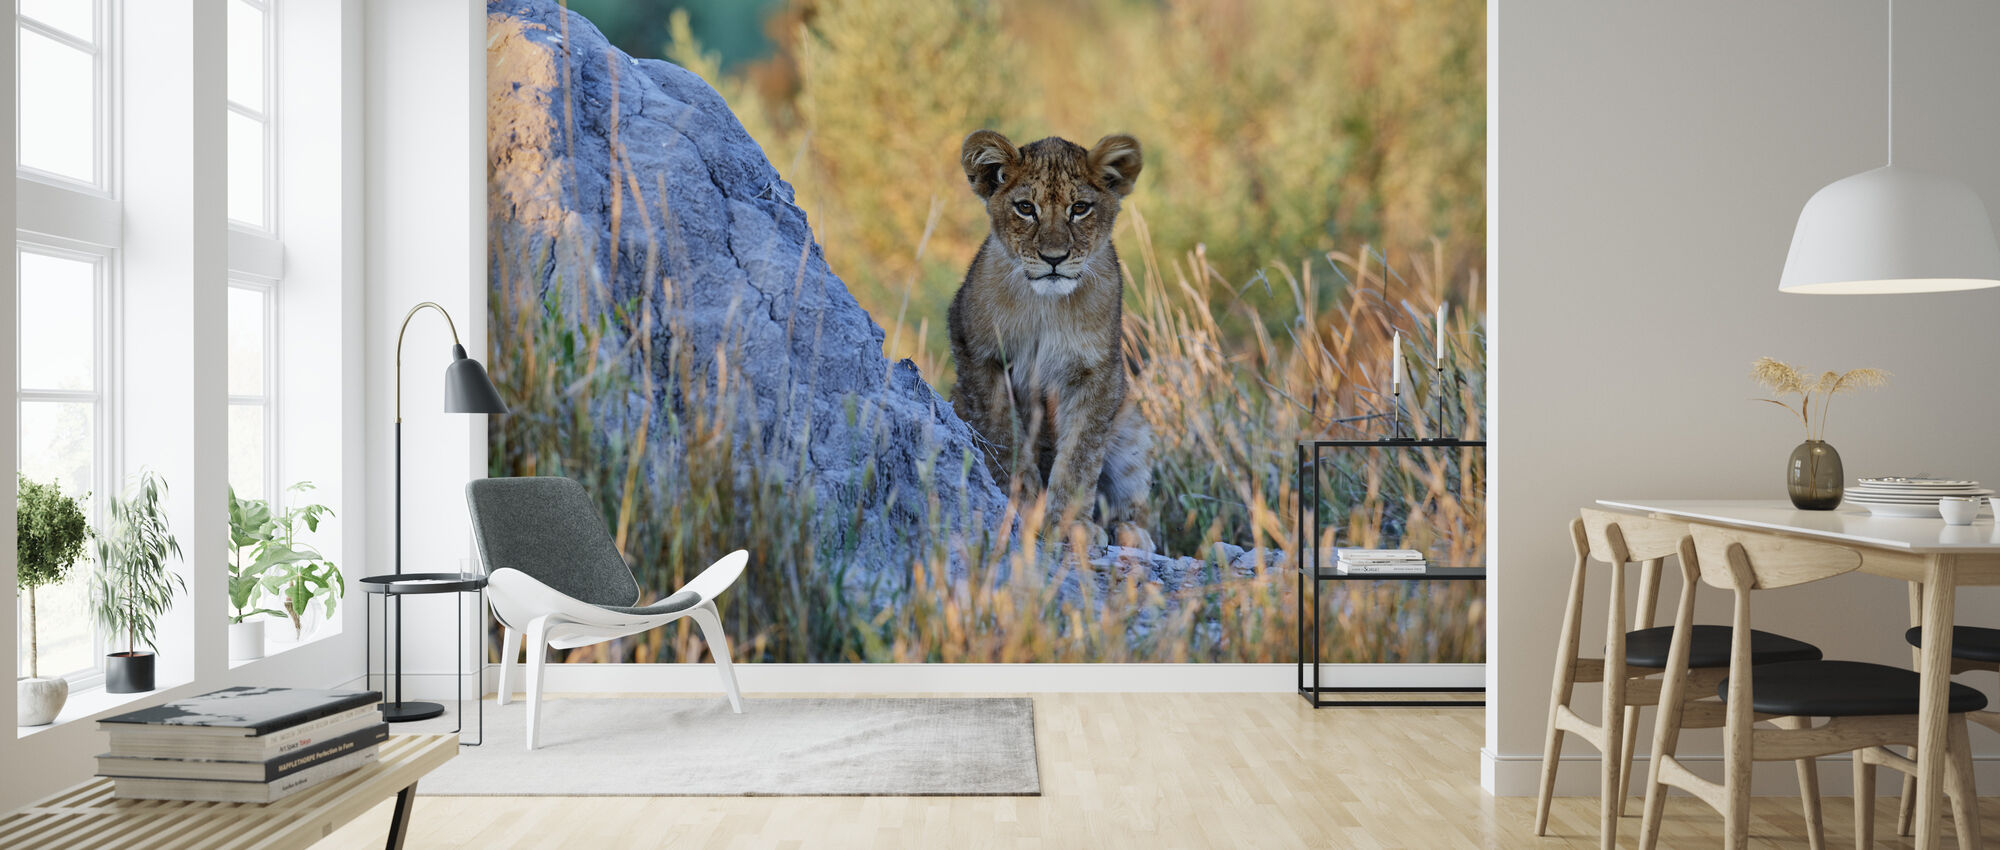 African Lion Cub - Wallpaper - Living Room